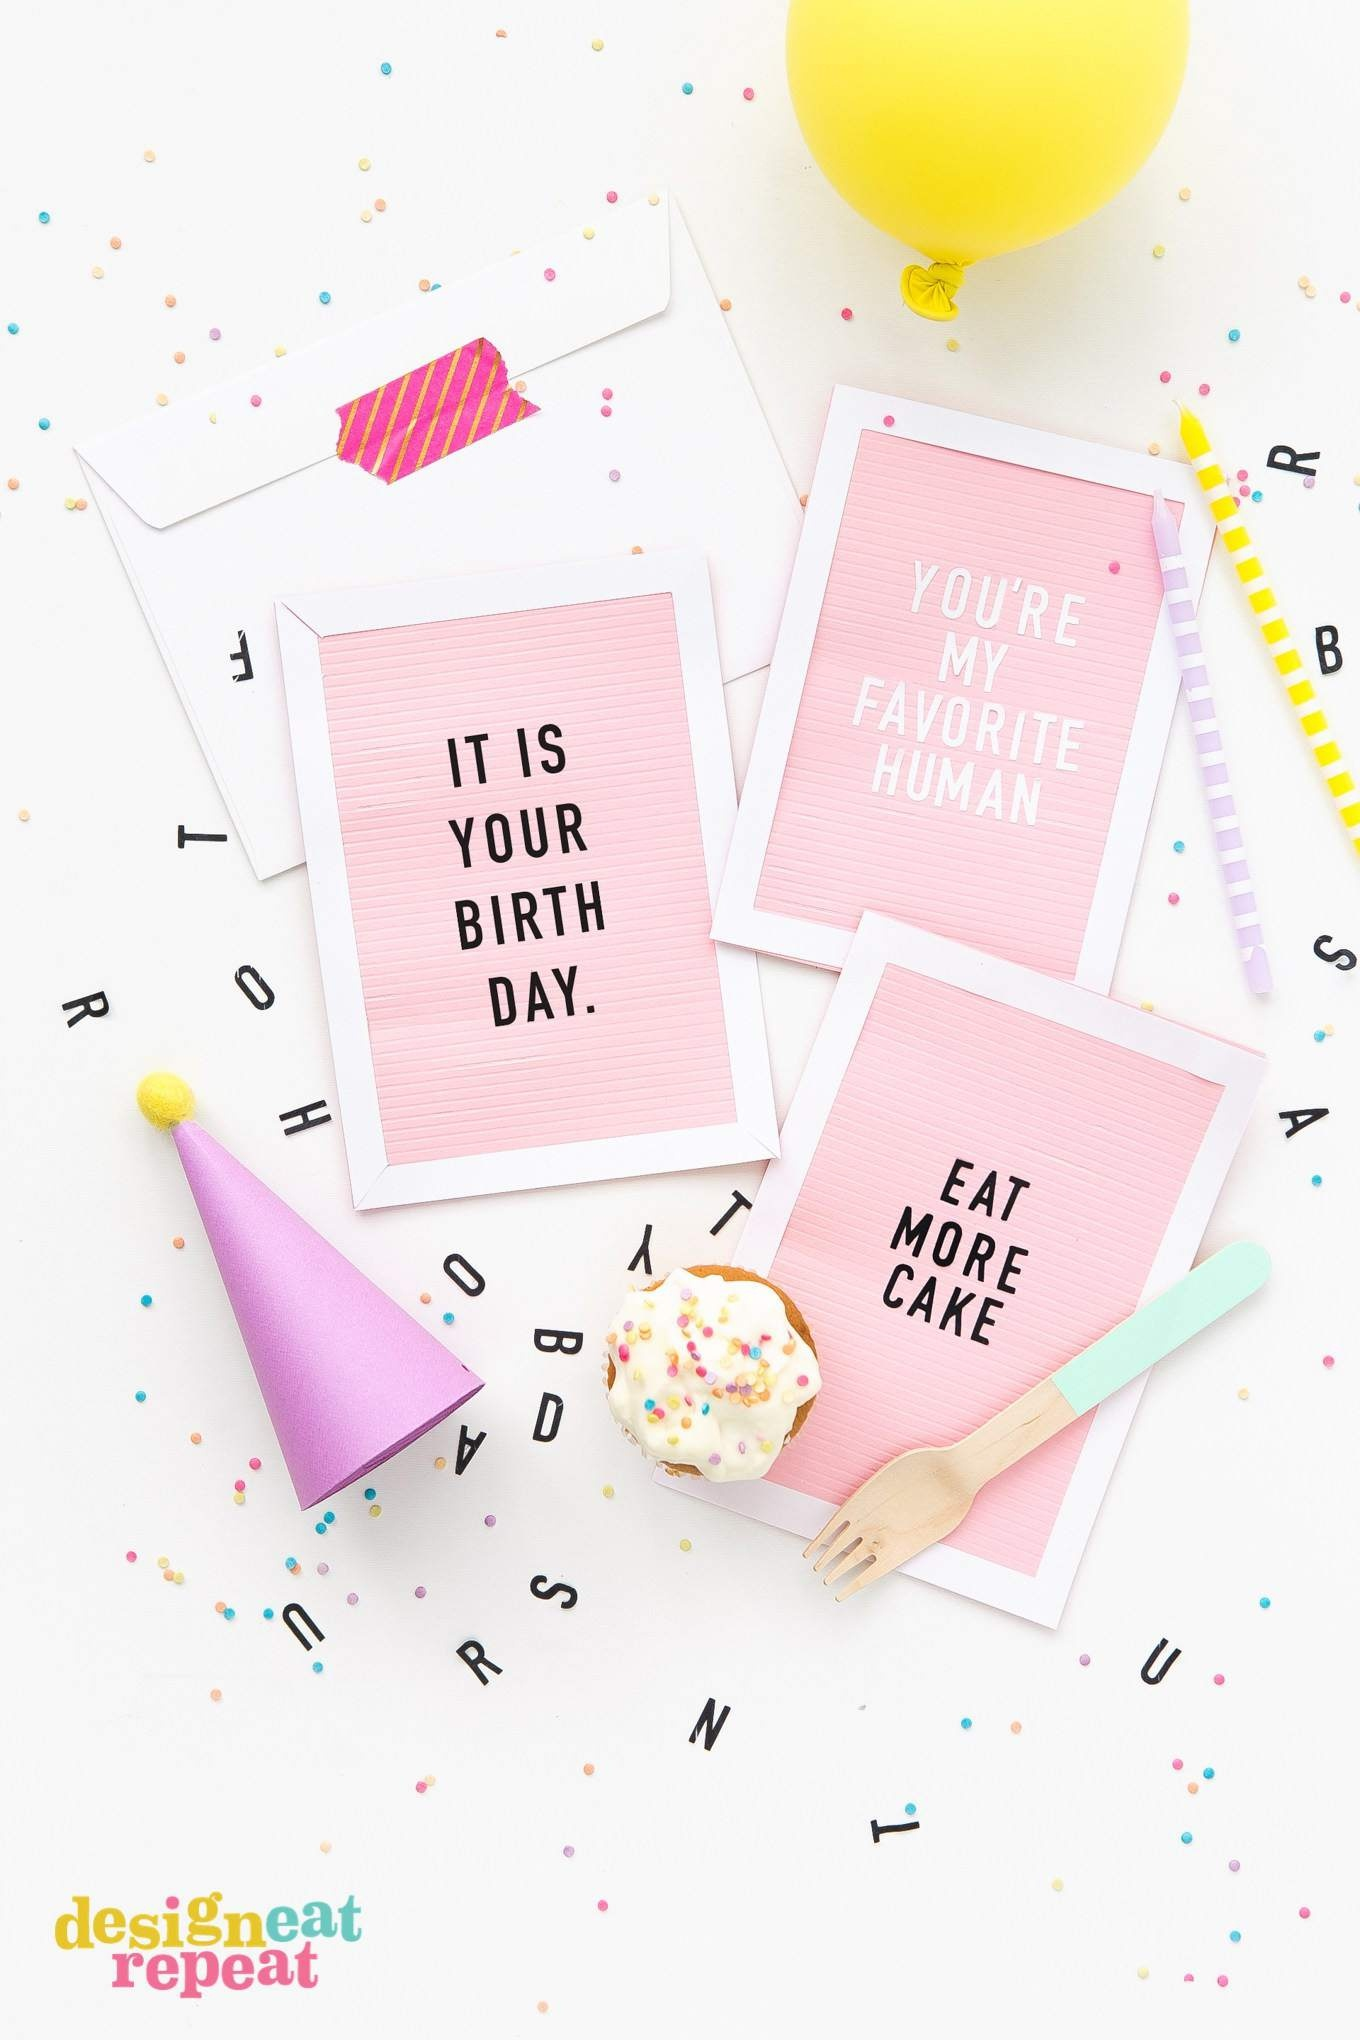 Get Inspiration From 25 Of The Best Diy Birthday Cards - Free Printable Birthday Cards For Her